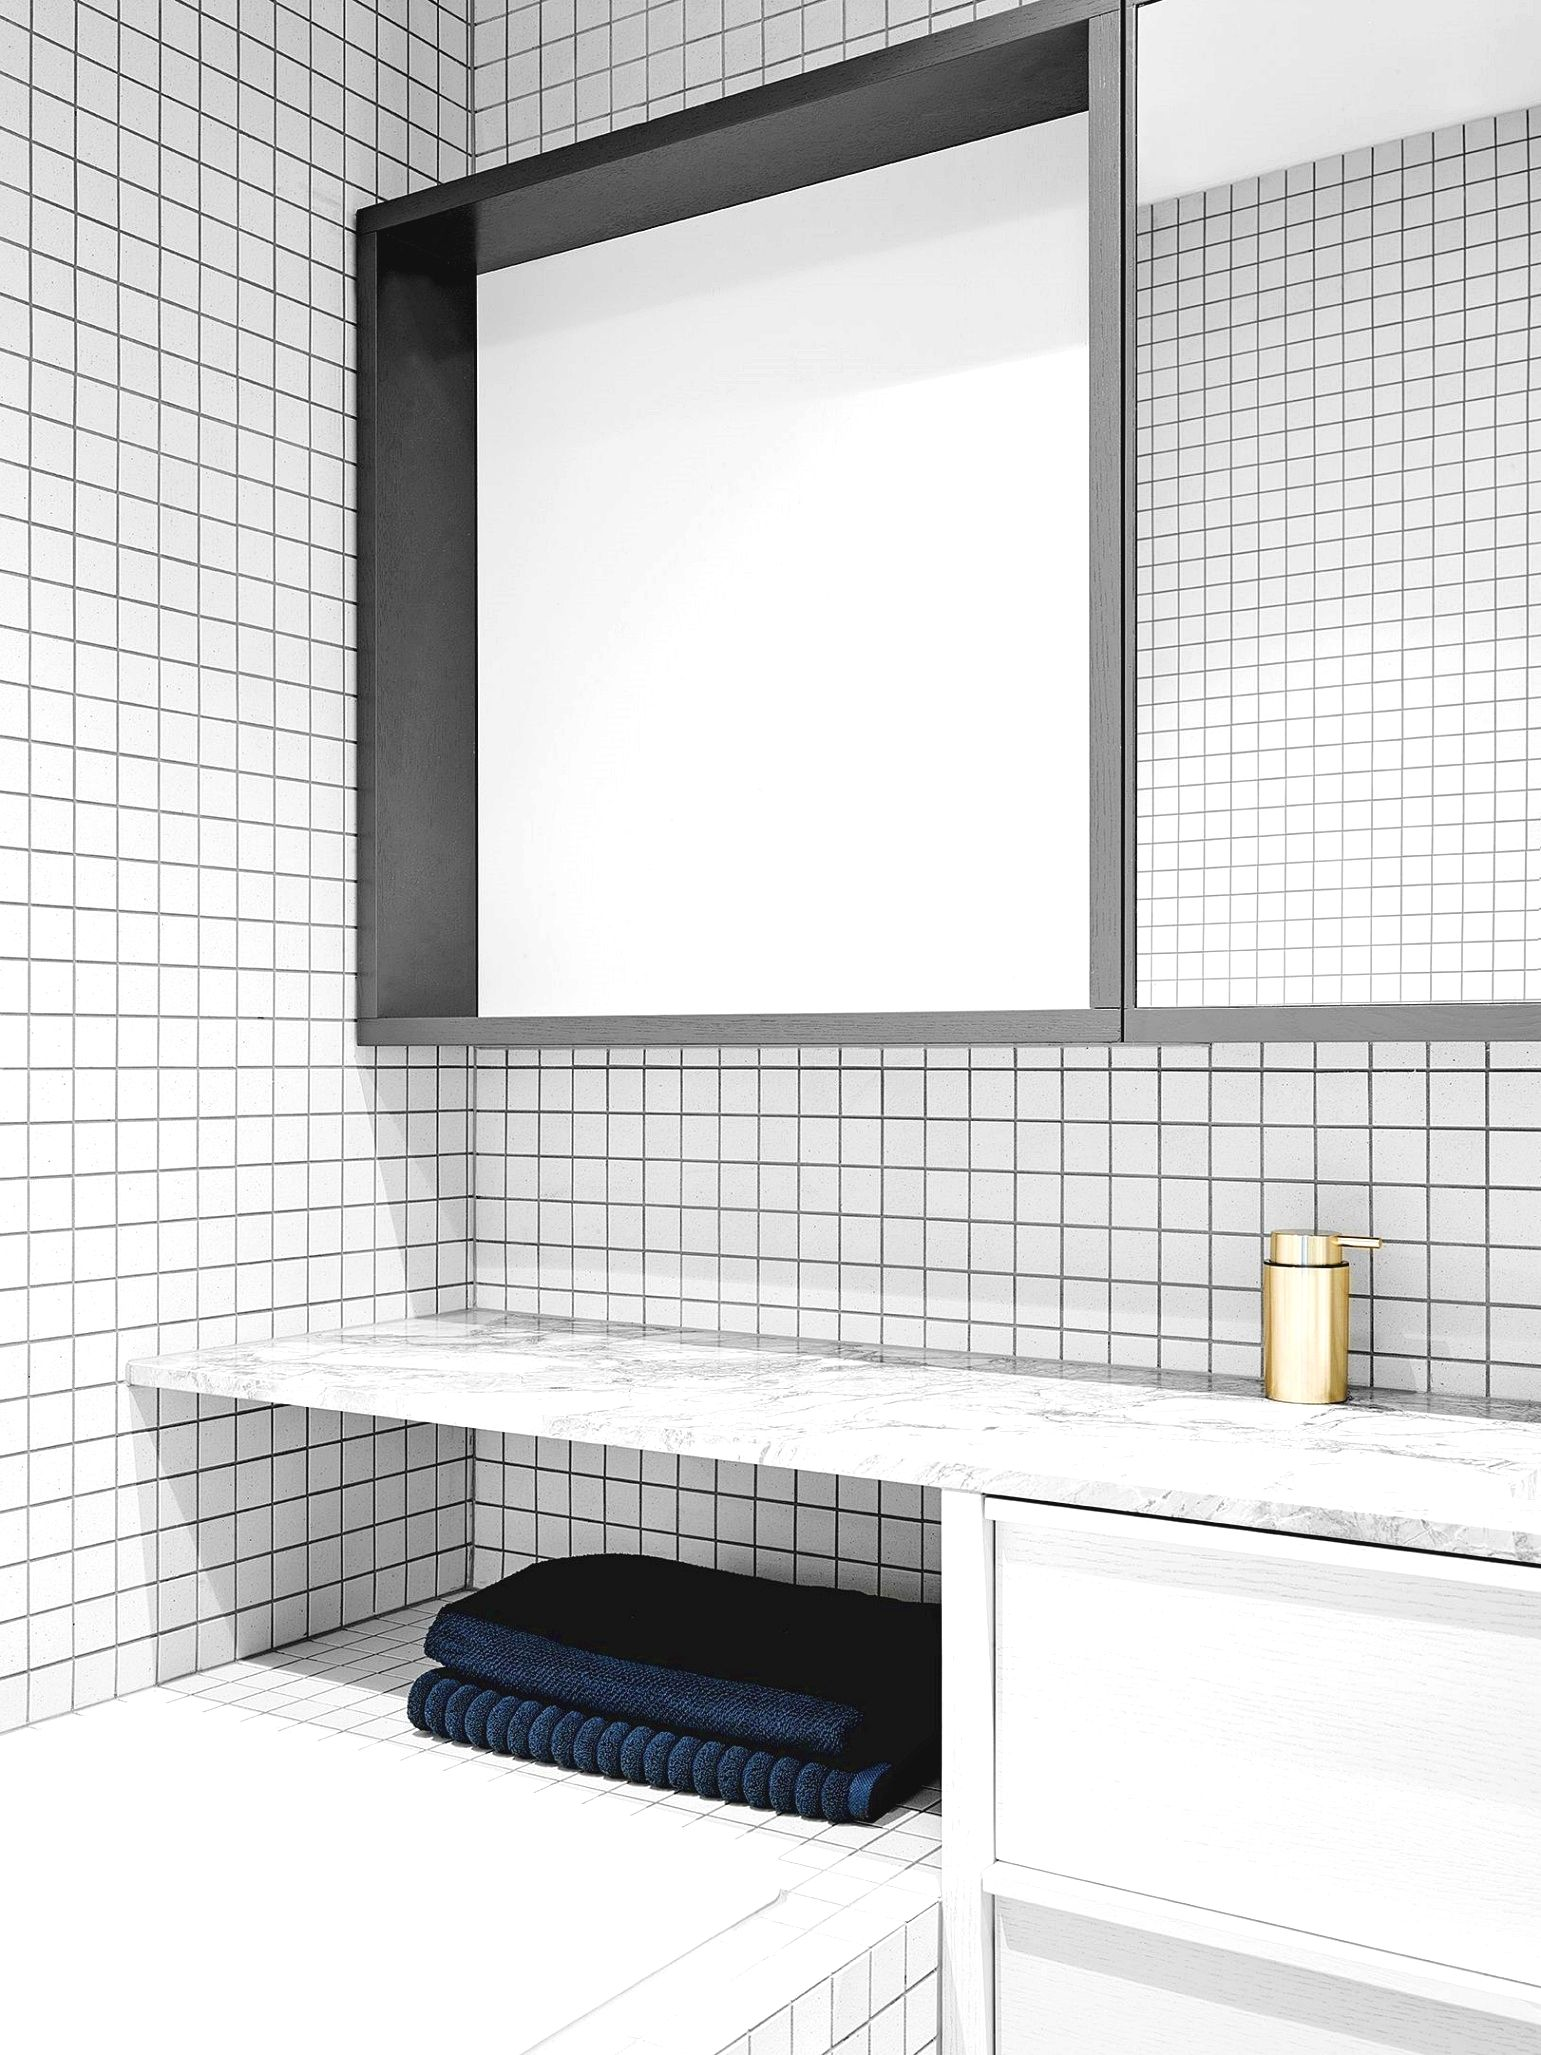 Bathroom Designs Idea - Can I Design My Own Bathroom | Bathroom ...